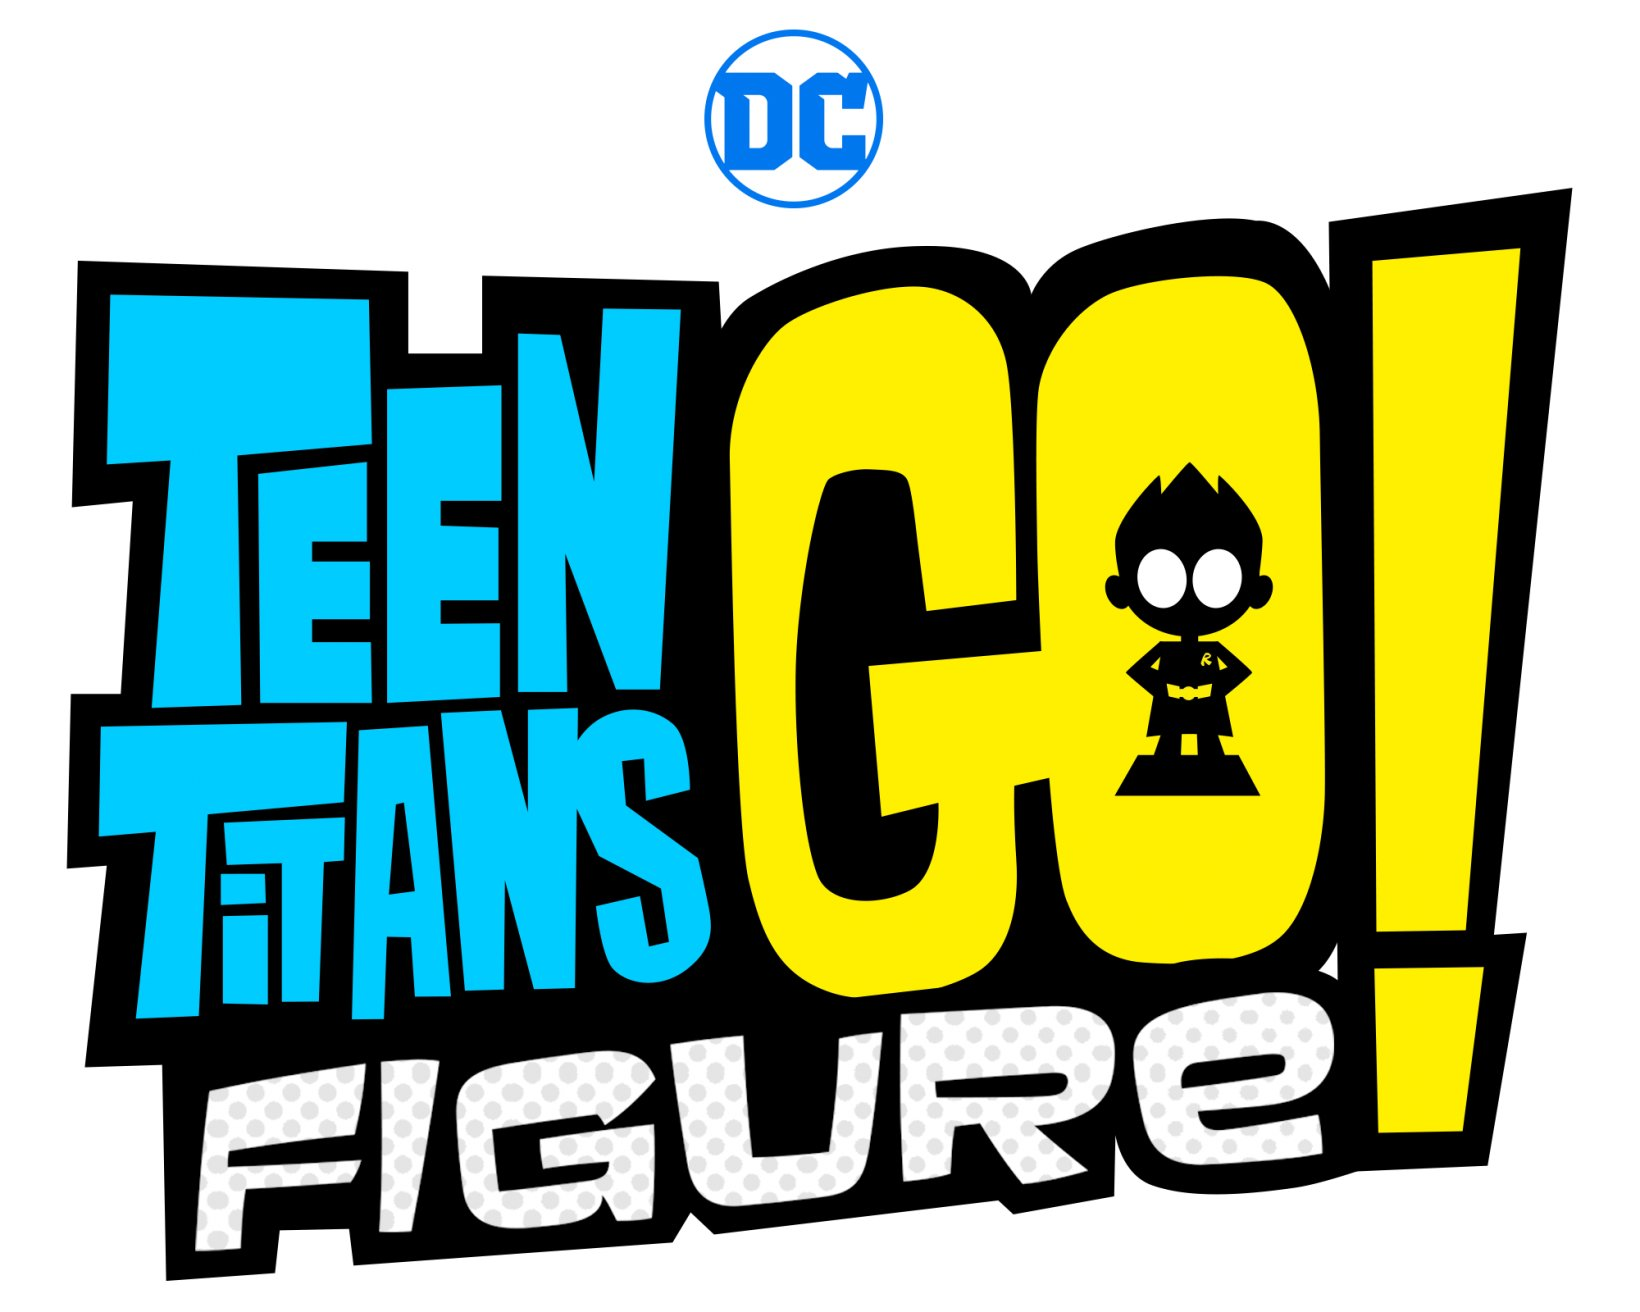 Teen Titans GO! Figure cheats and tips - Essential tips for battling